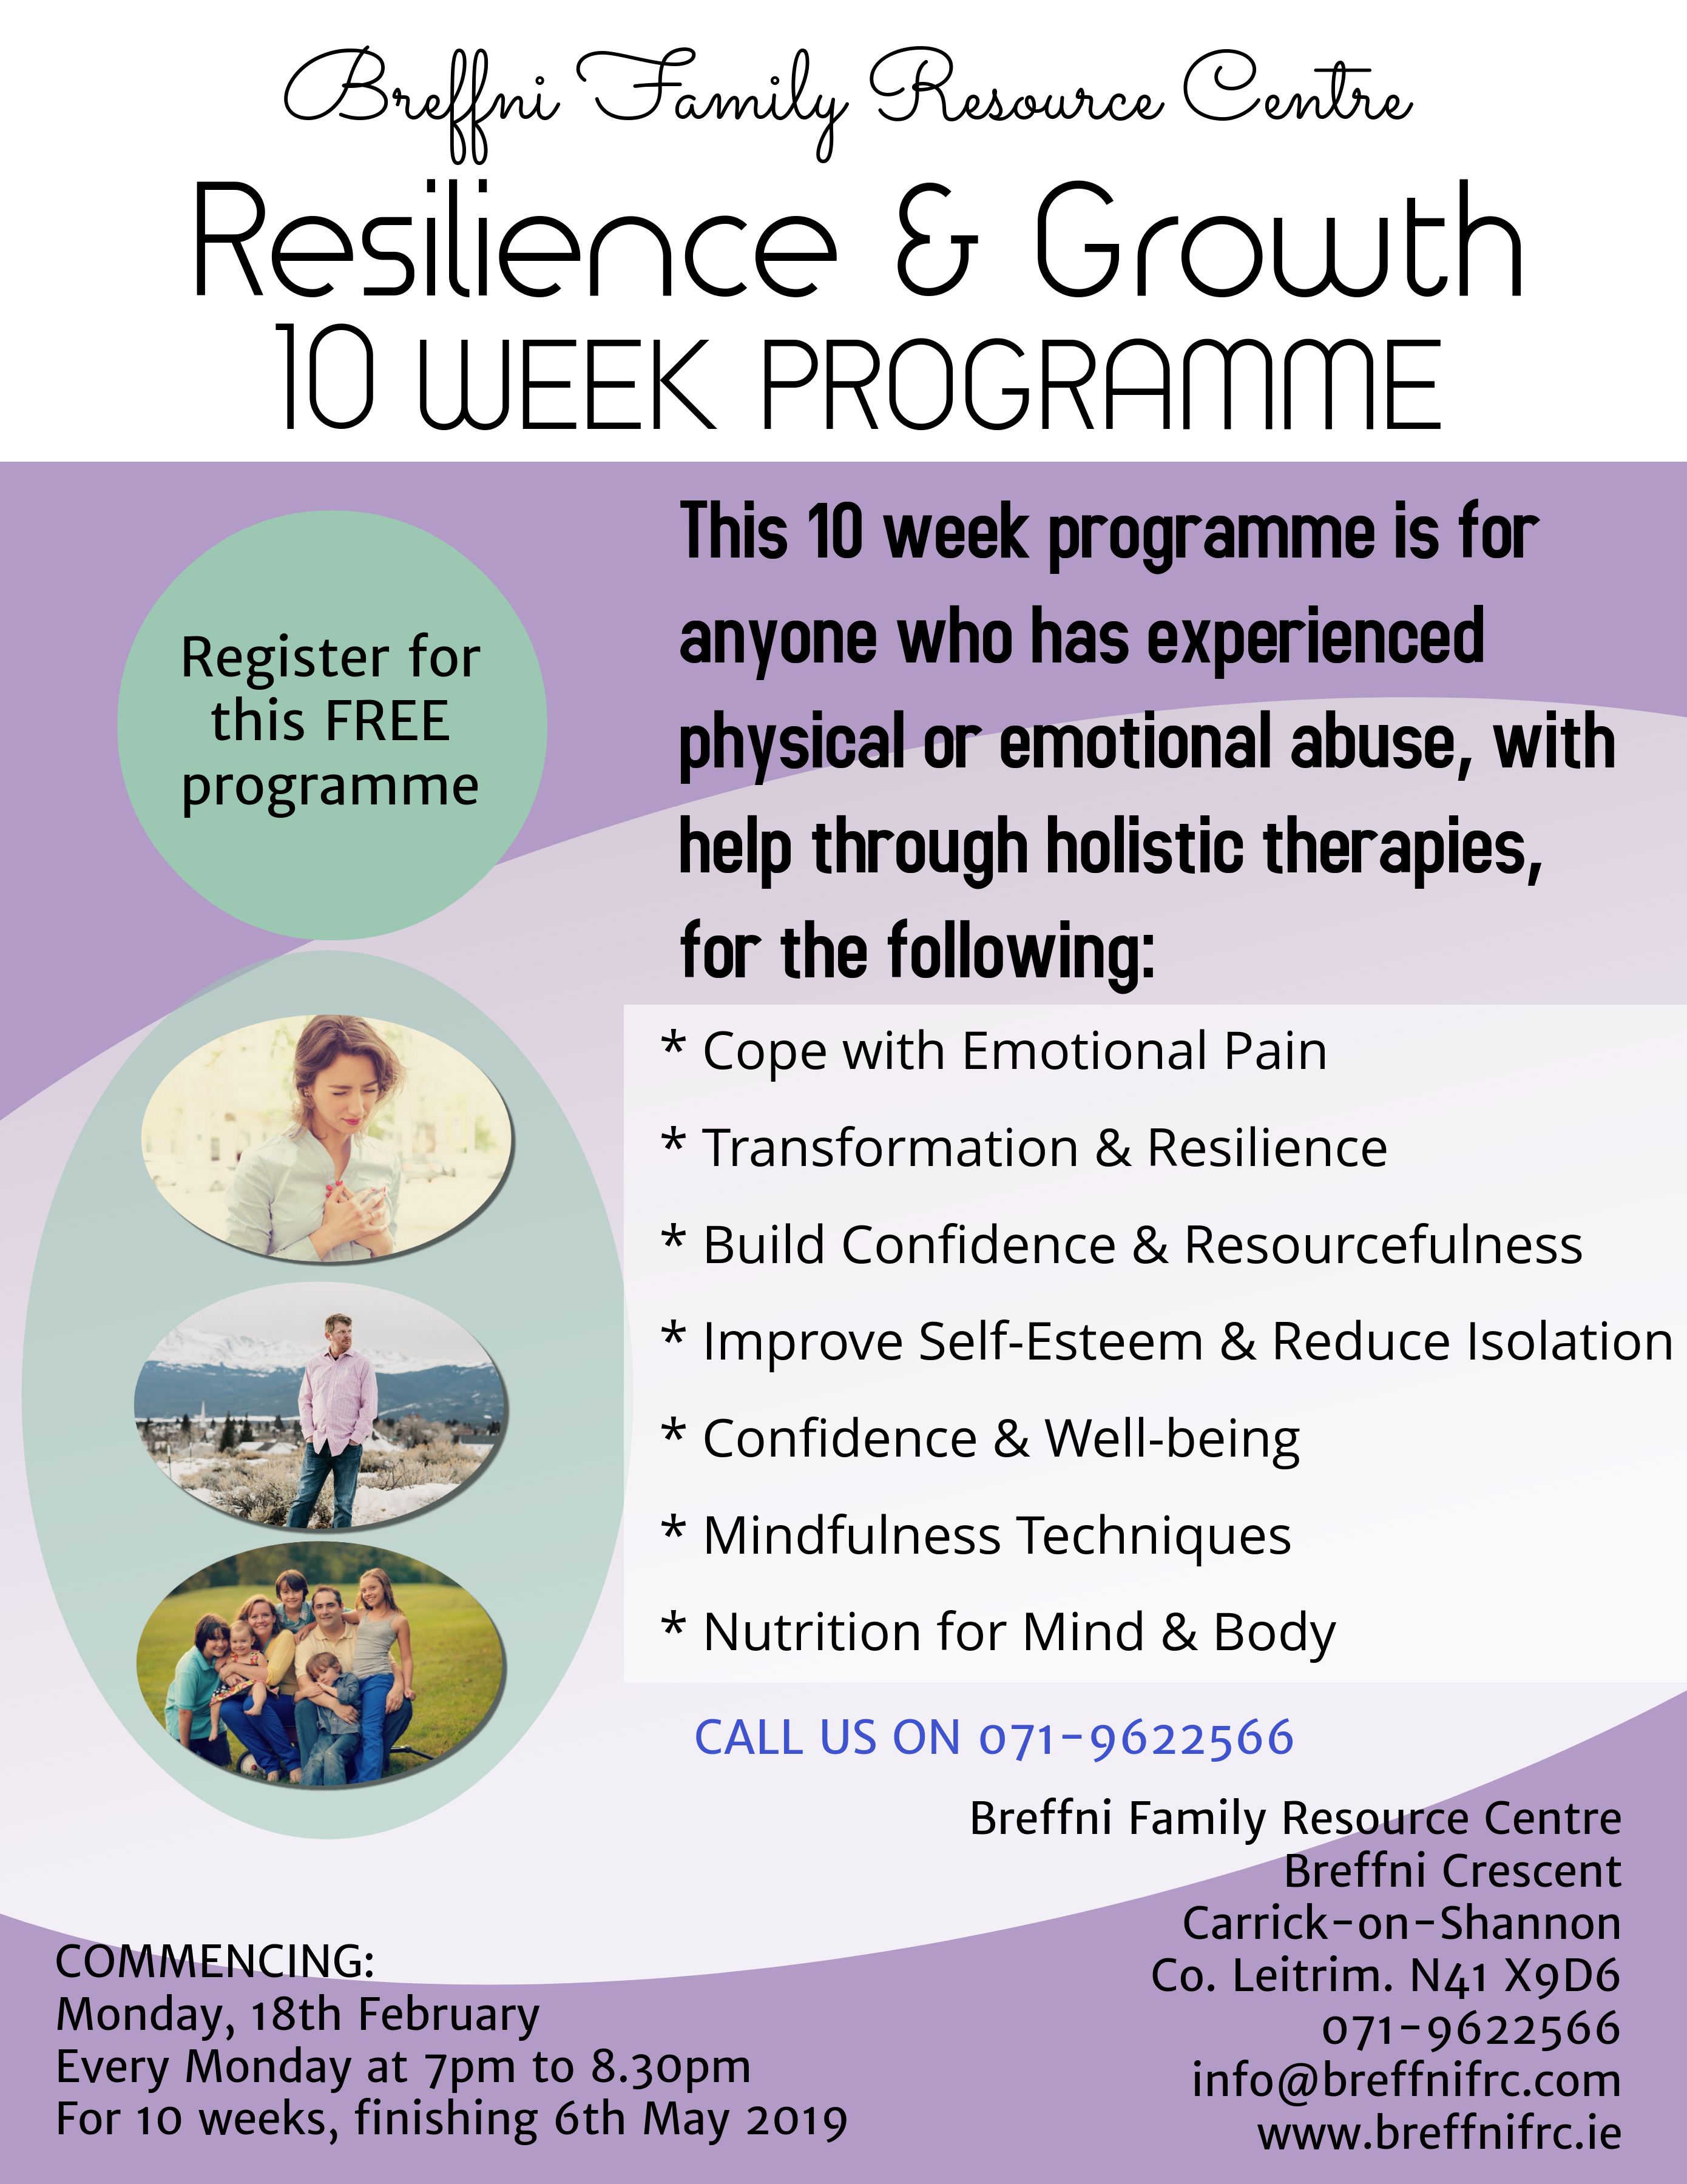 MyCarrick Event | Breffni Family Resource Centre : Resilience & Growth